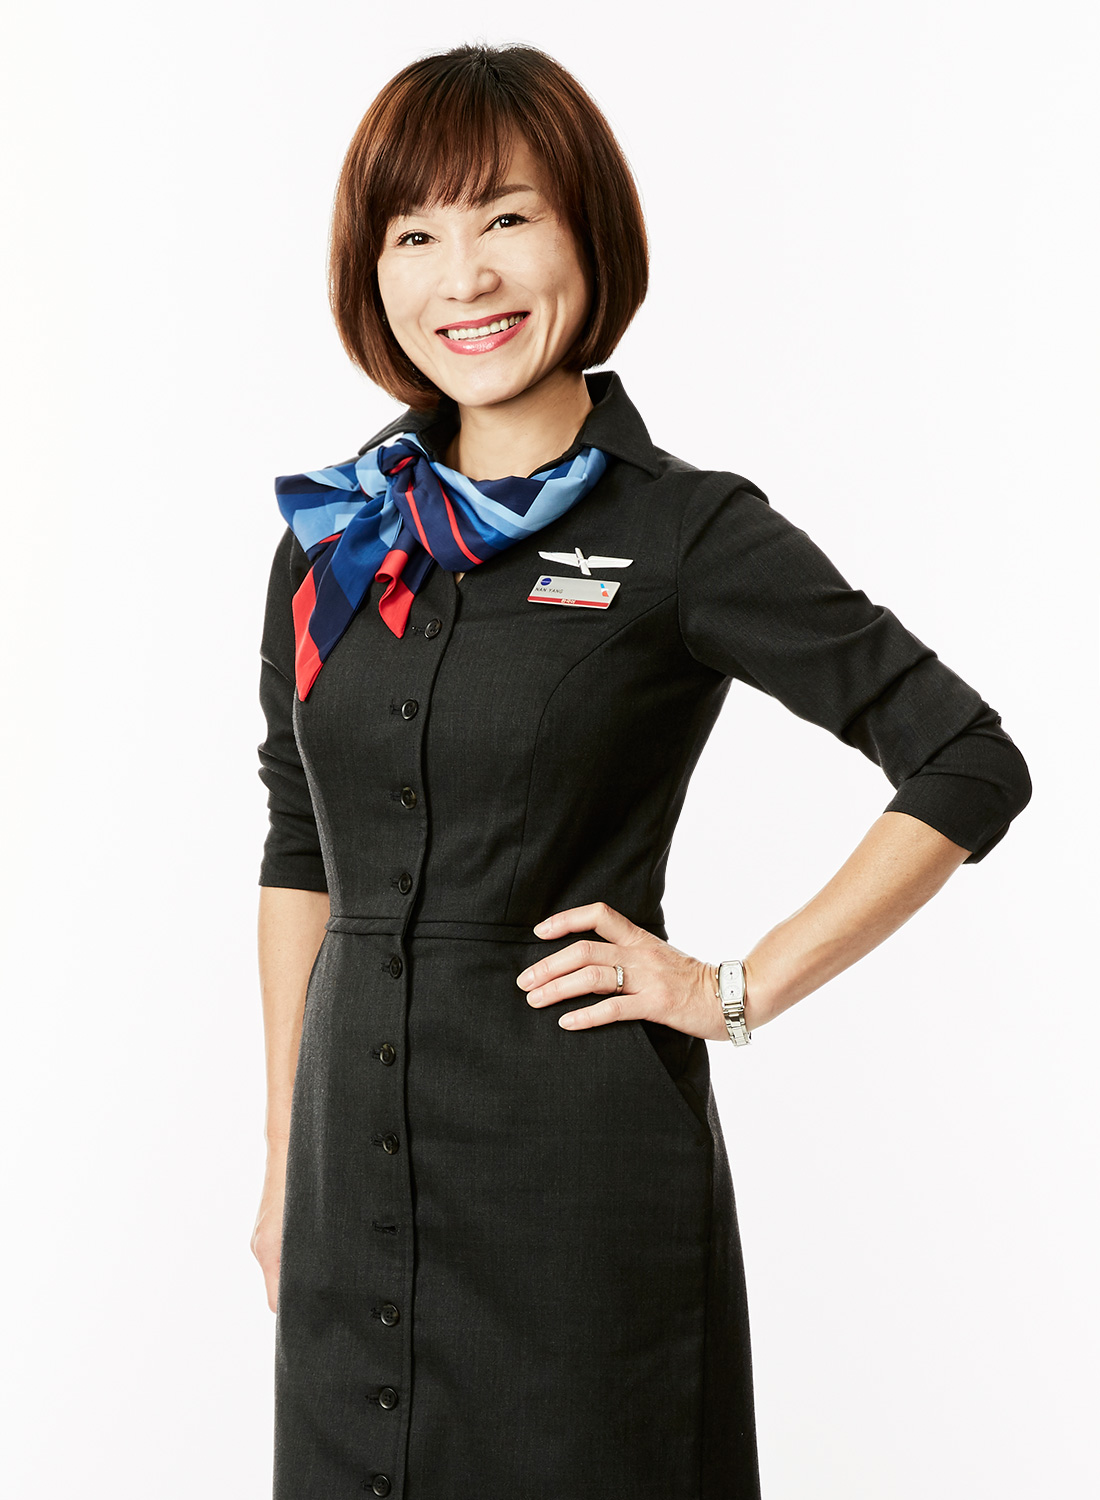 160920_AmericanAirlines_Portraits_By_BriJohnson_0025.jpg